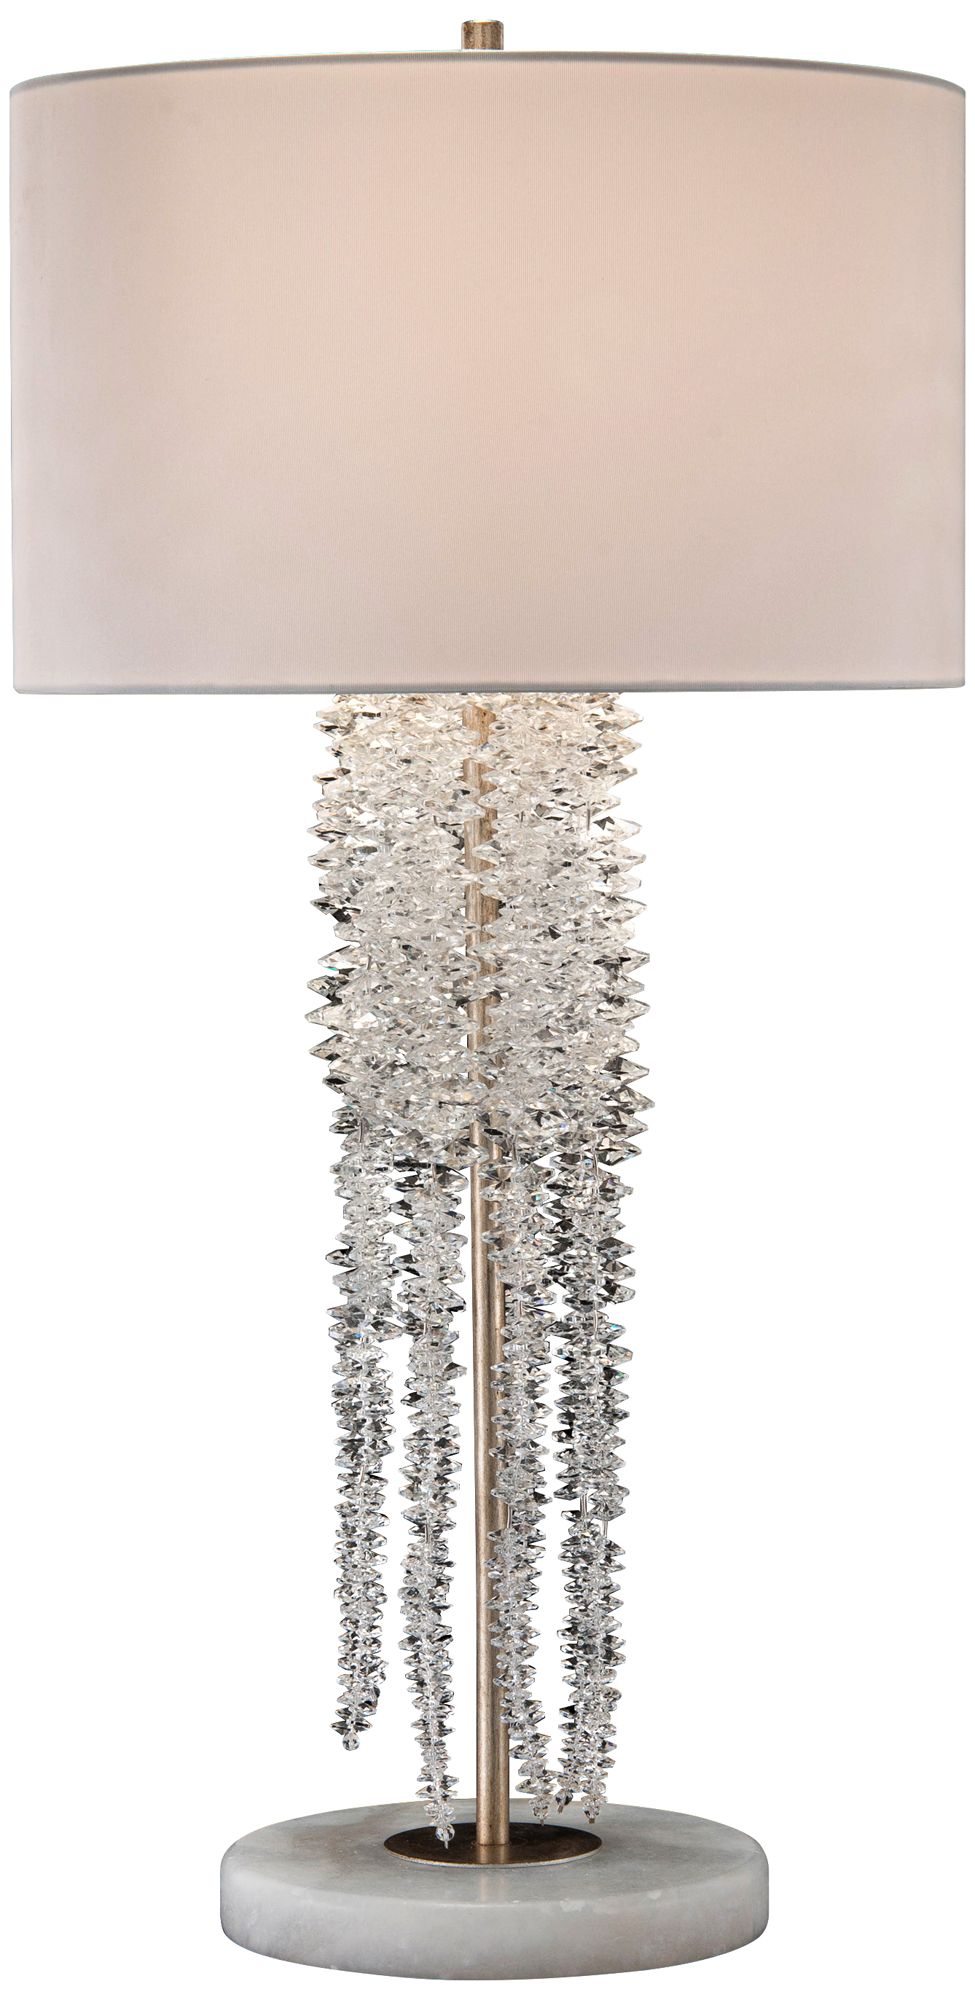 john richard small cascading waterfall crystal table lamp